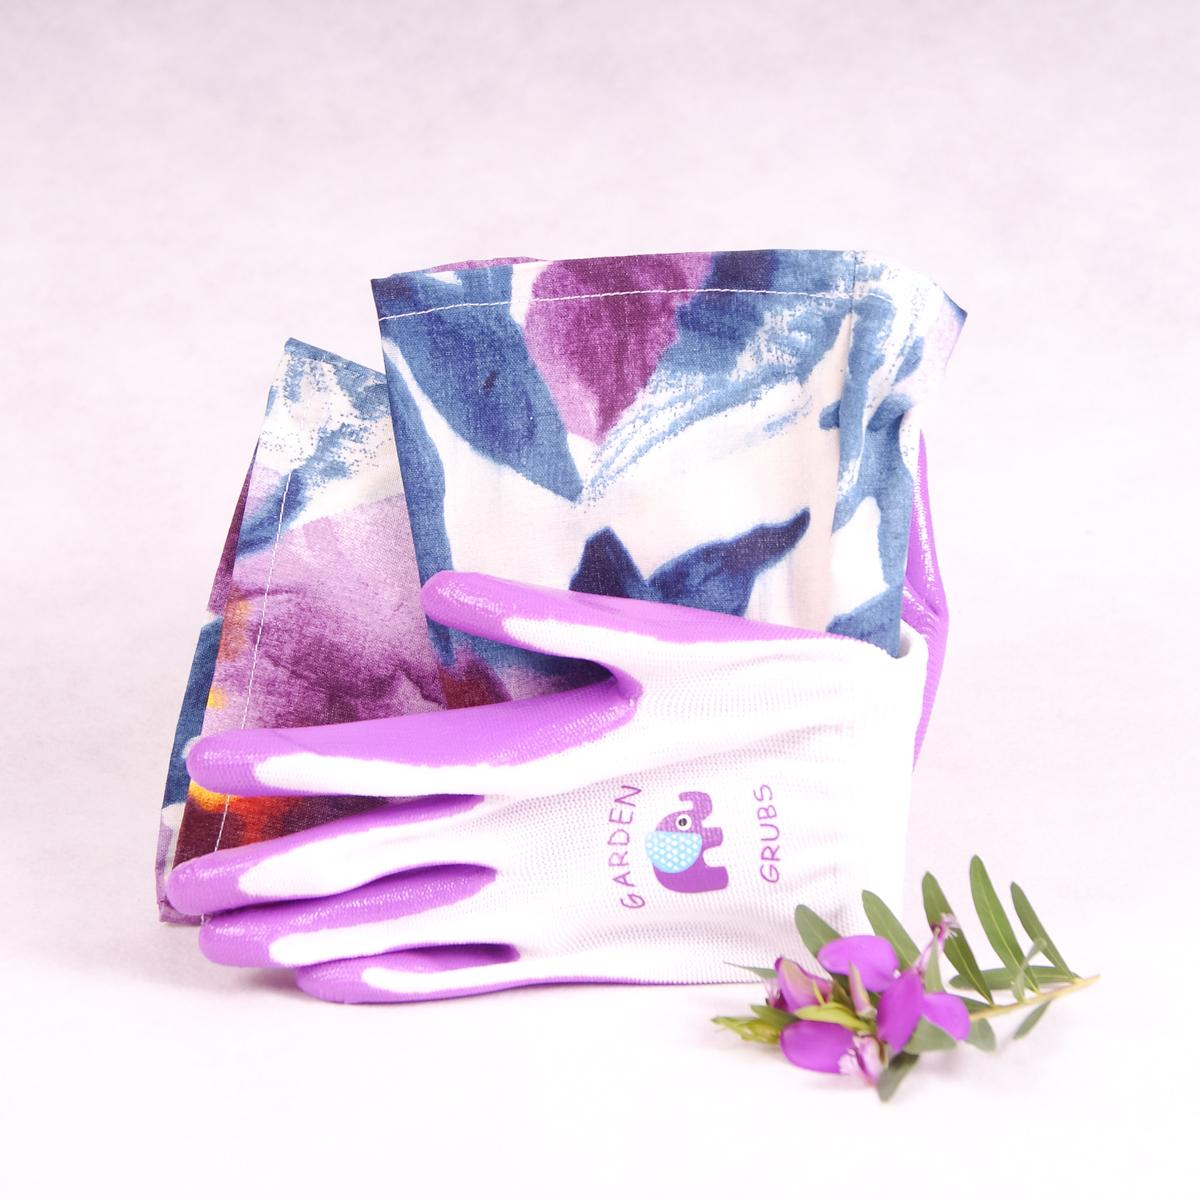 Kids gardening gloves - Purple - Gloves - Throw Some Seeds - Australian gardening gifts and eco products online!